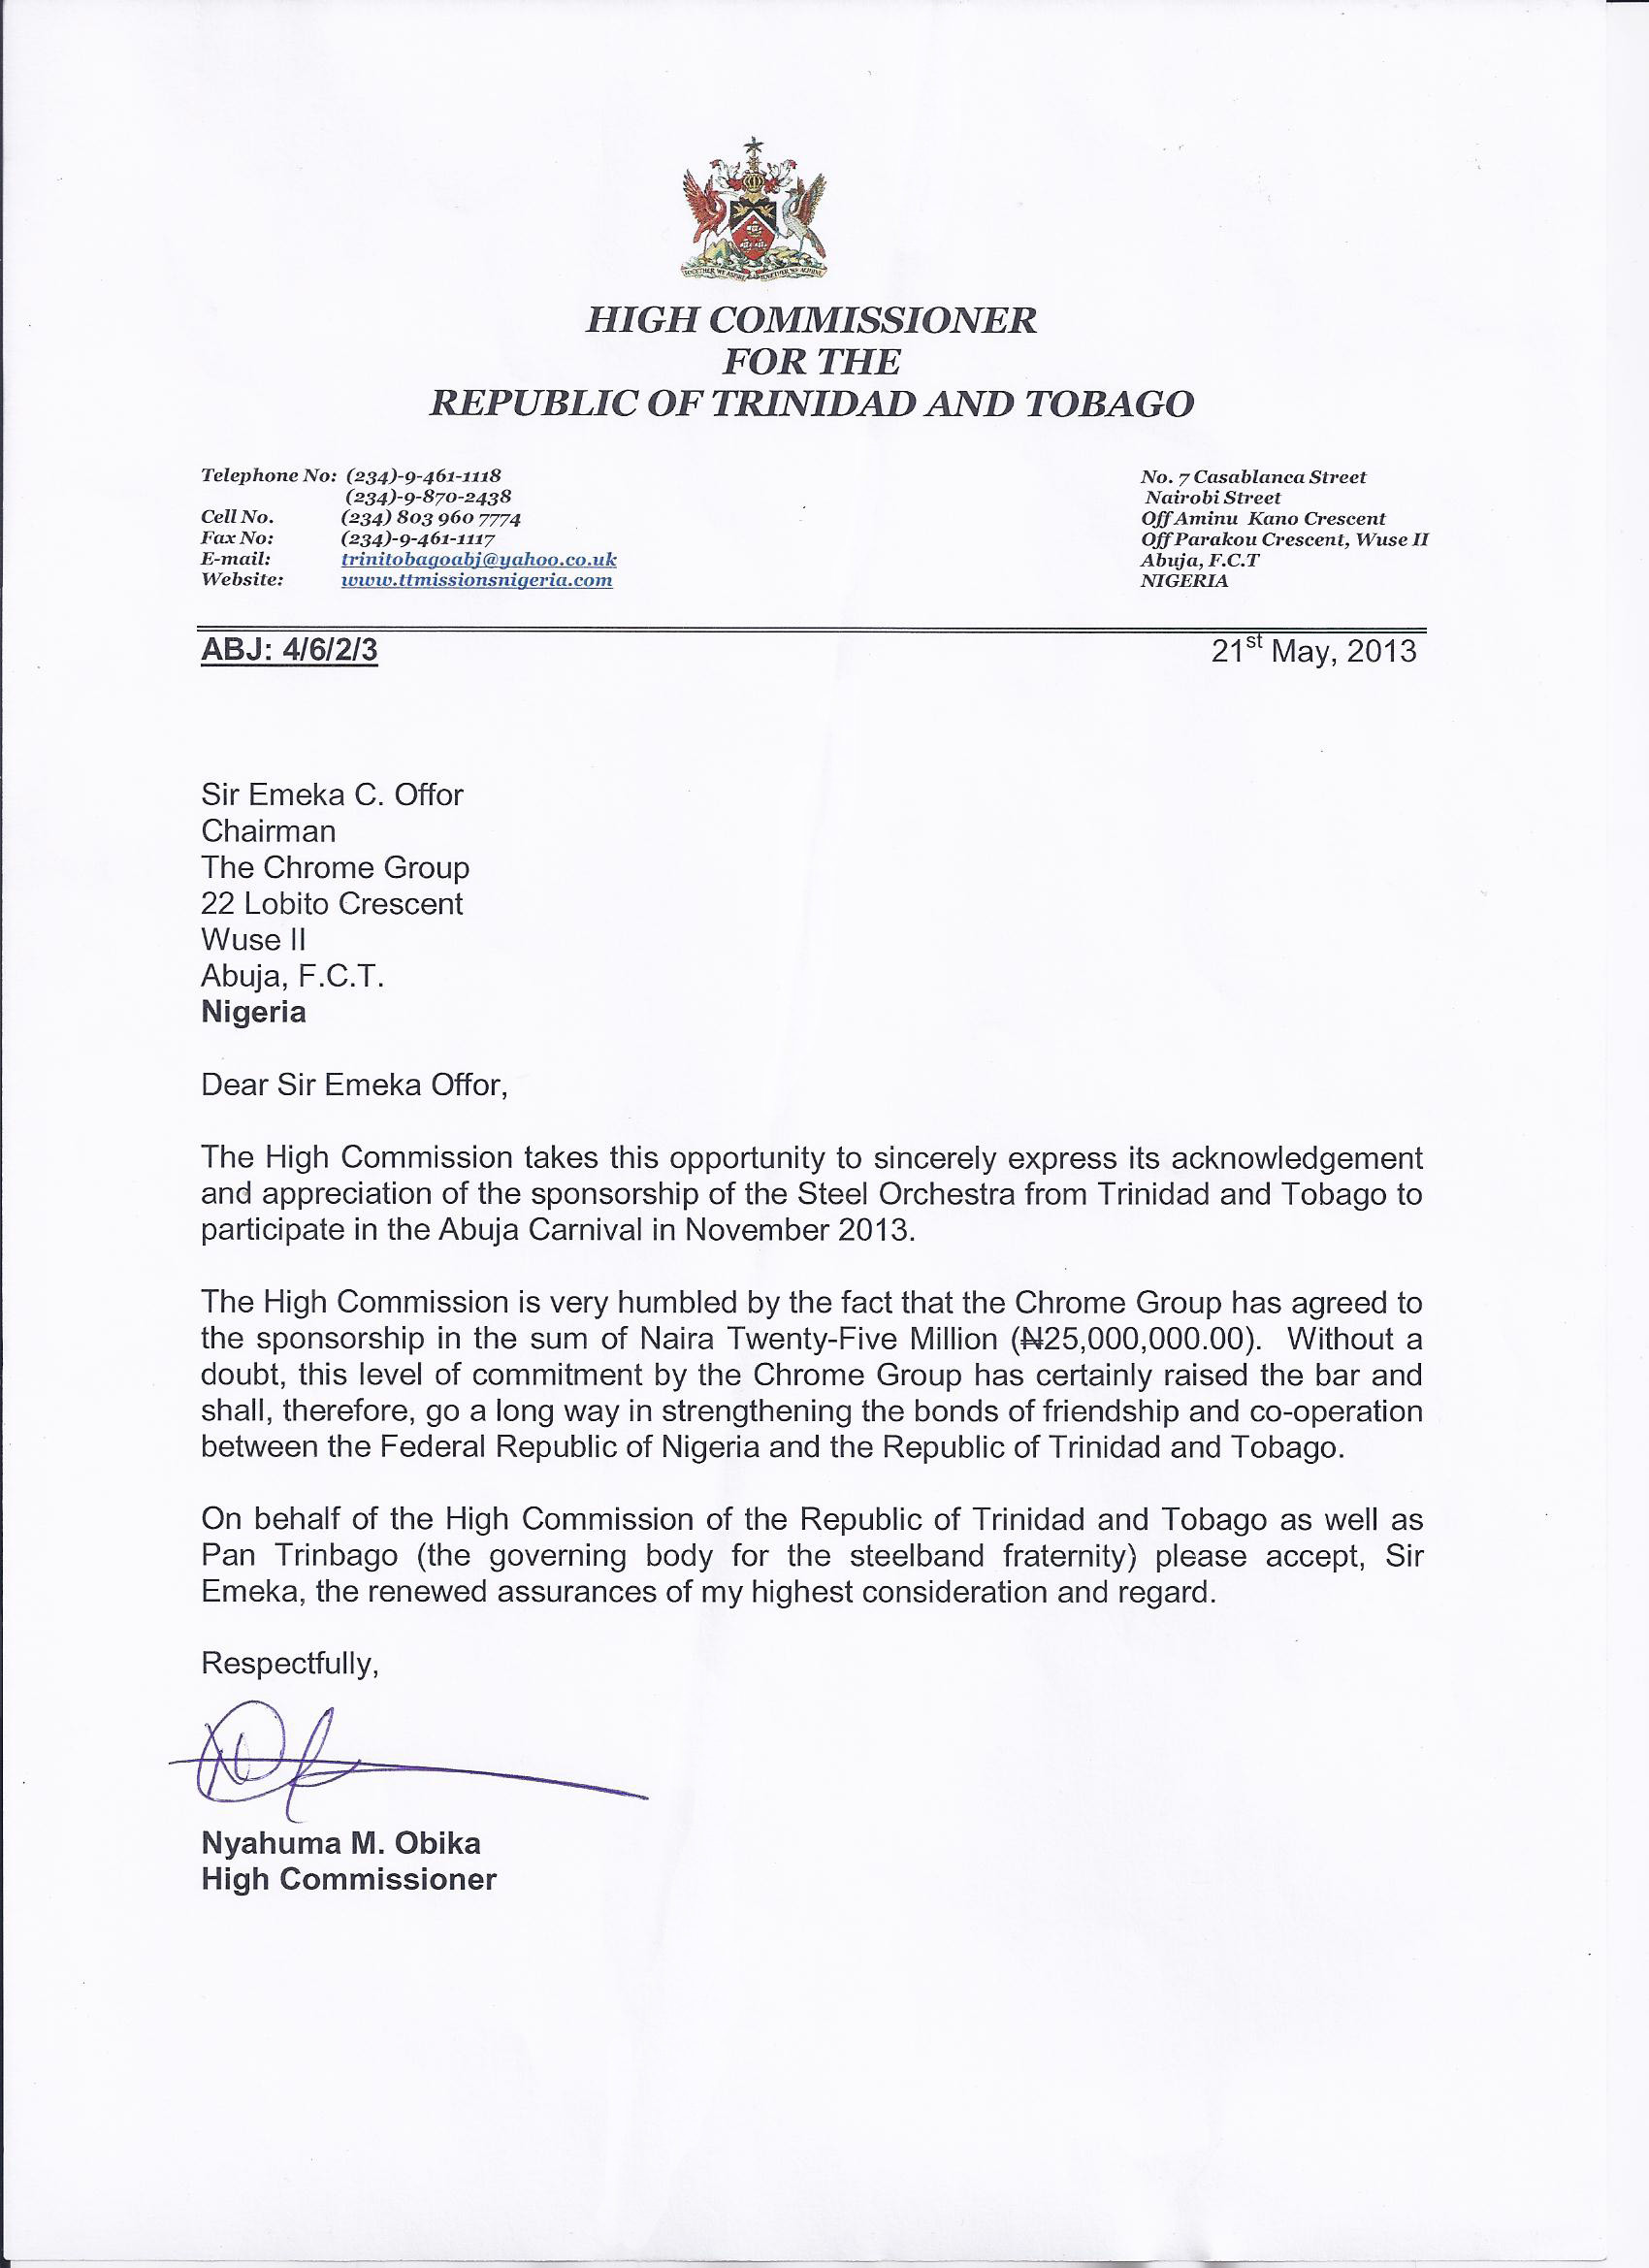 Letter from the High Commissioner